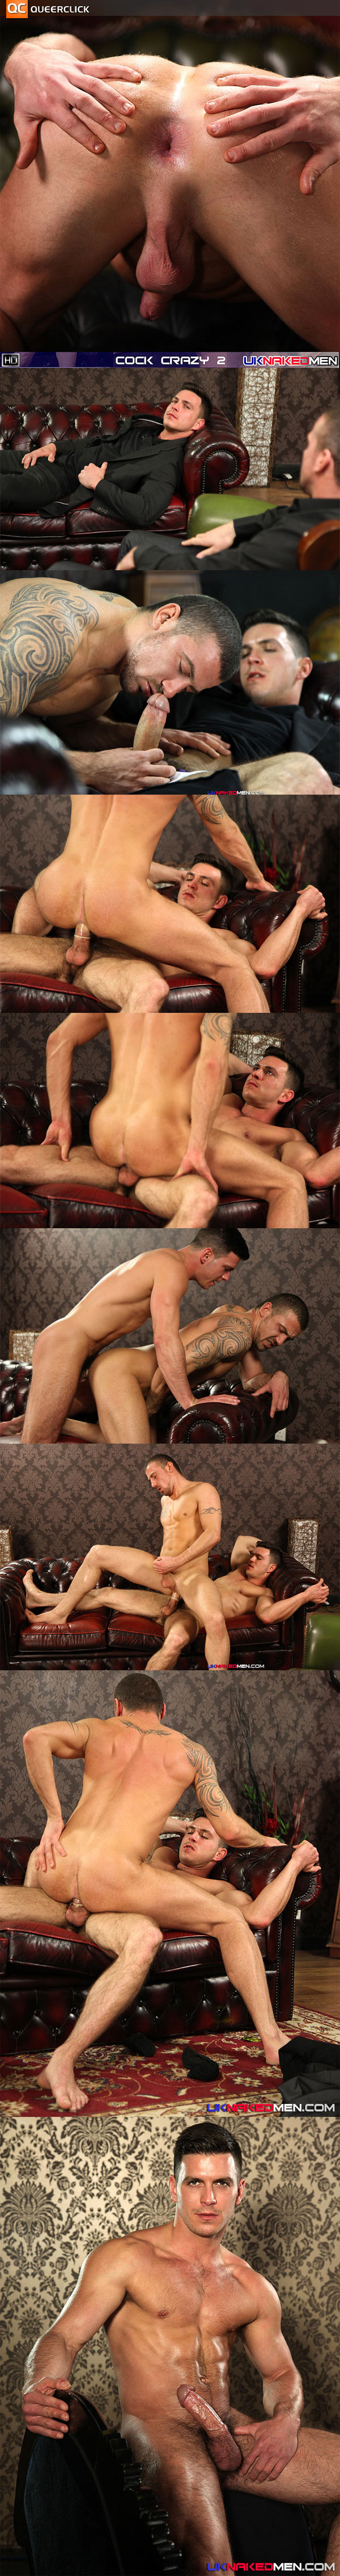 UK Naked Men's Paddy and Marco